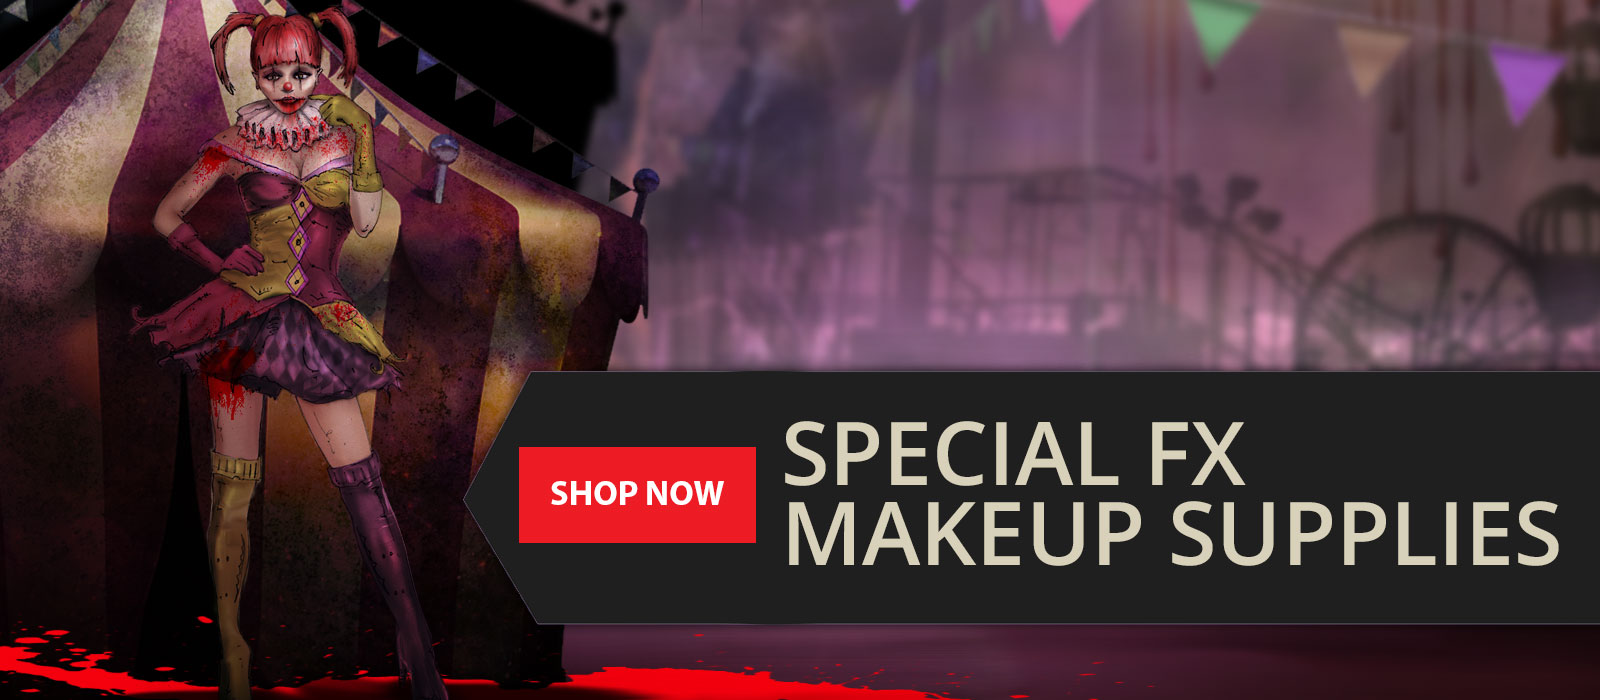 Special FX Makeup Supplies from FX Warehouse